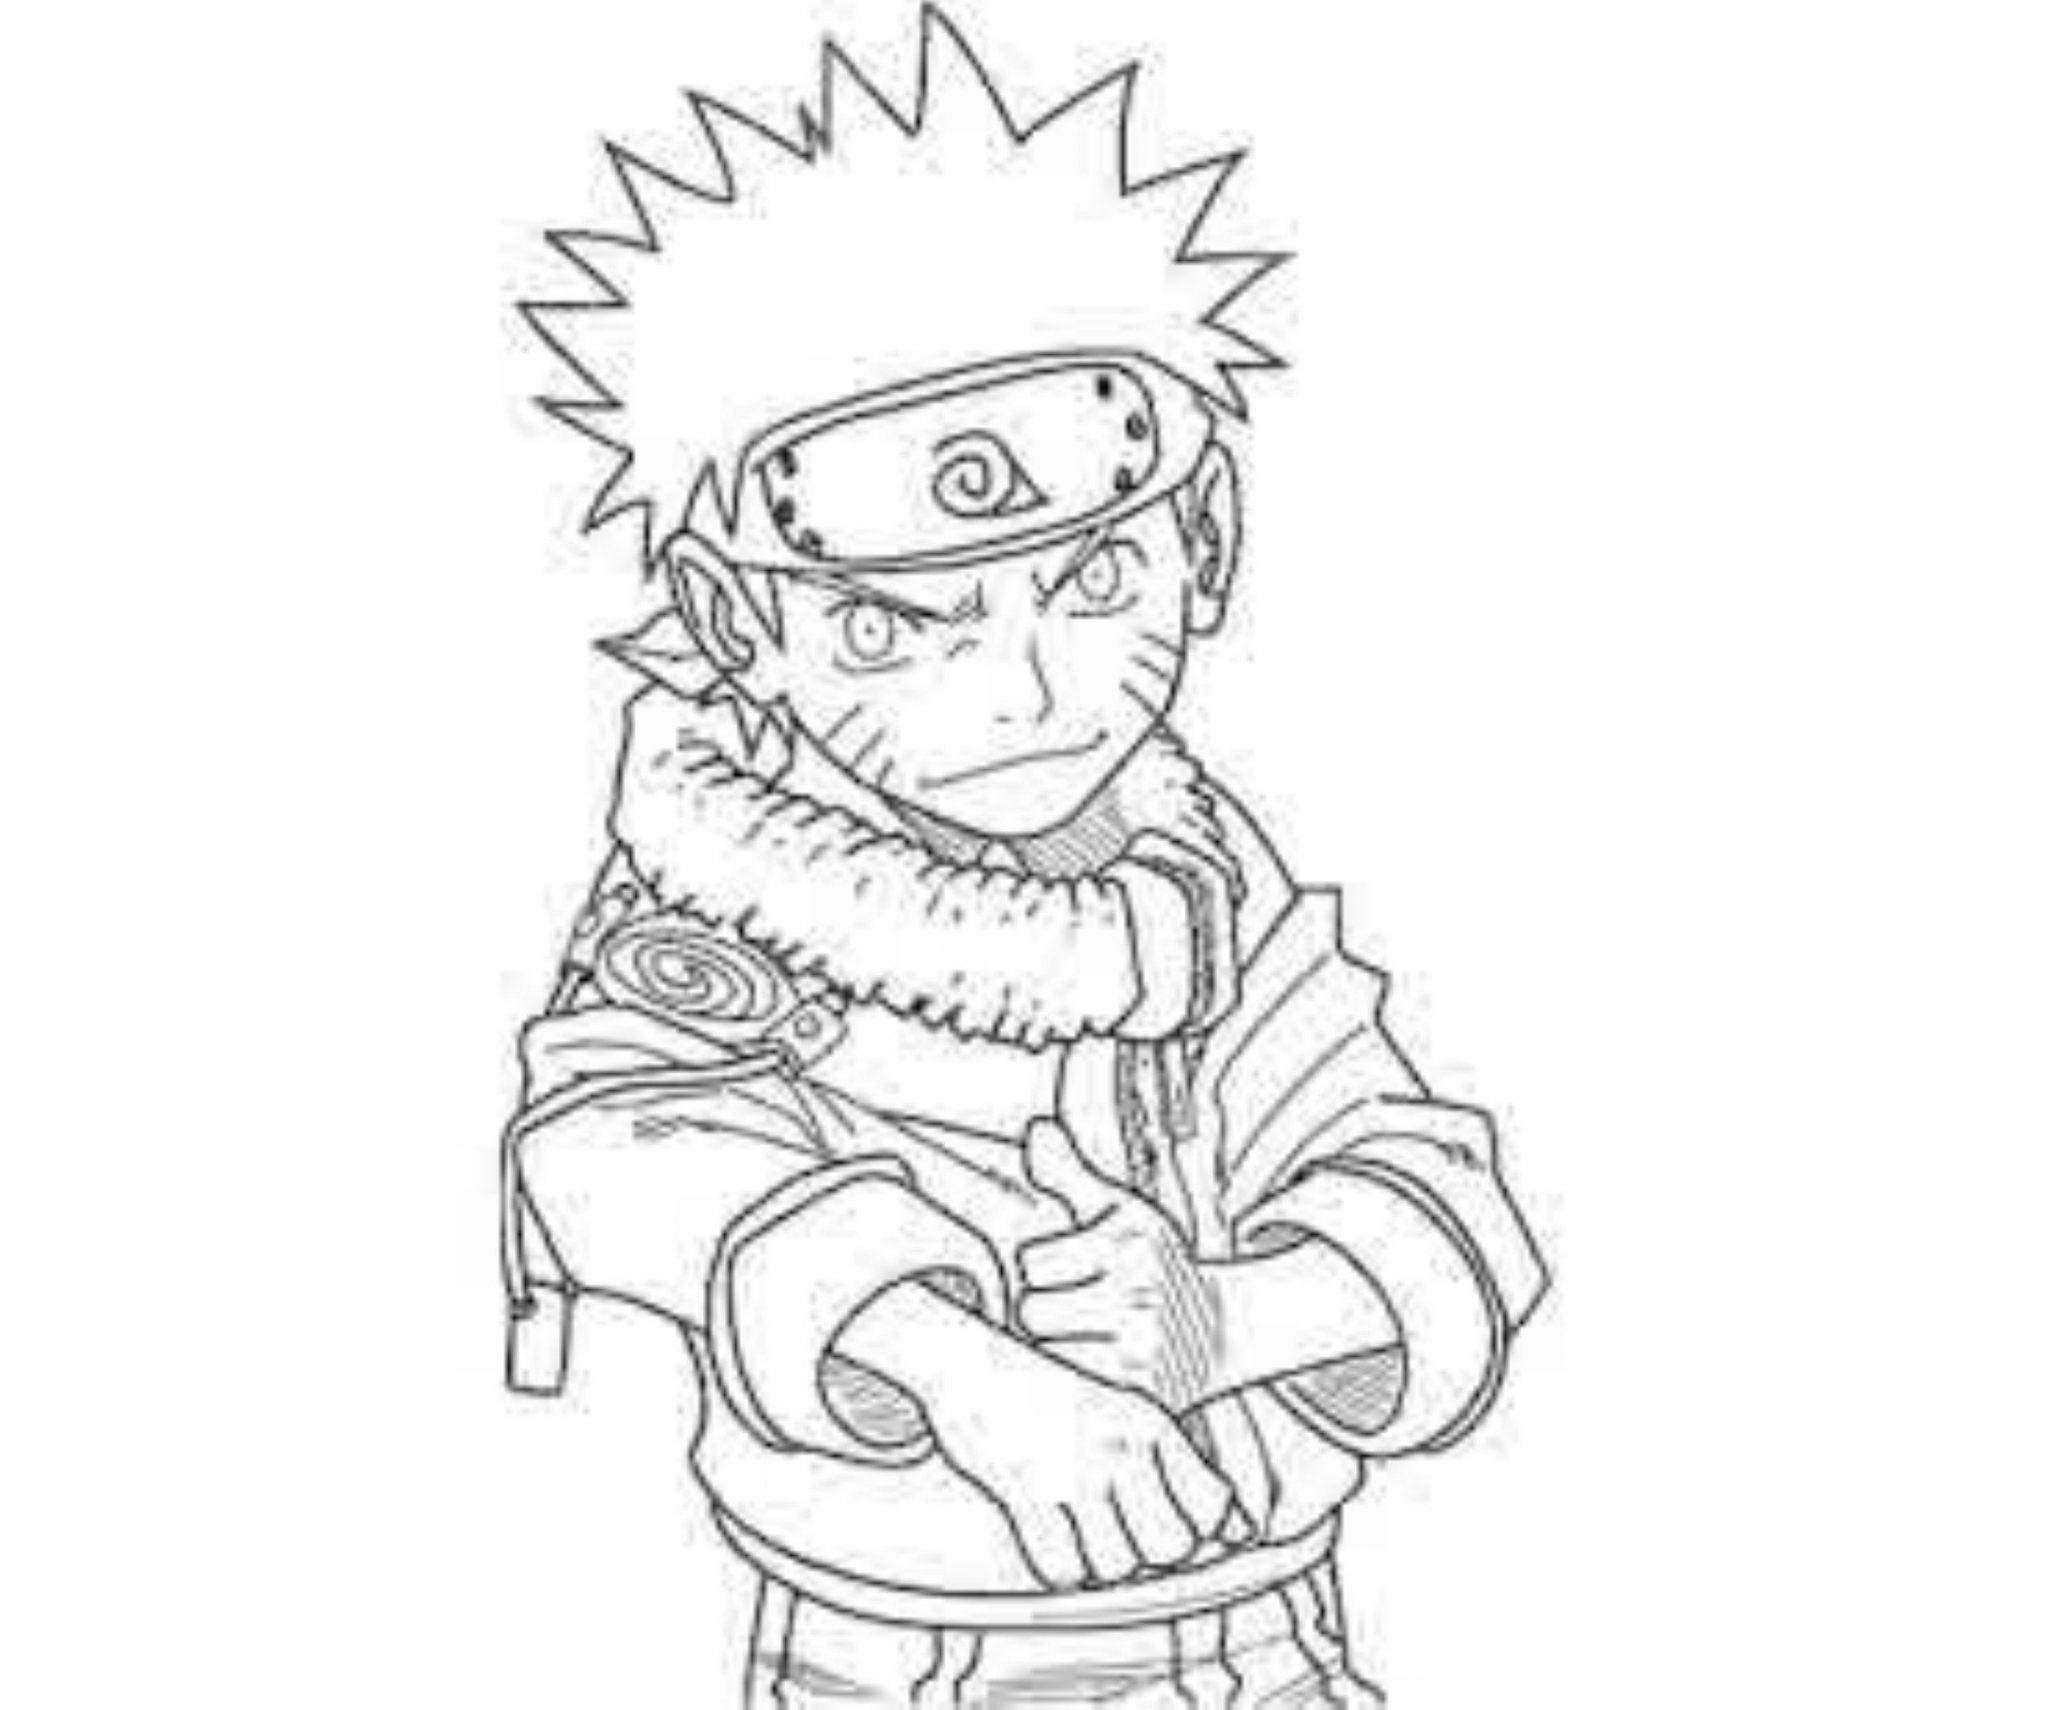 Naruto-Shippuden-Coloring-Pages-Online | | Bestappsforkids pour Naruto Shippuden Coloring Pages